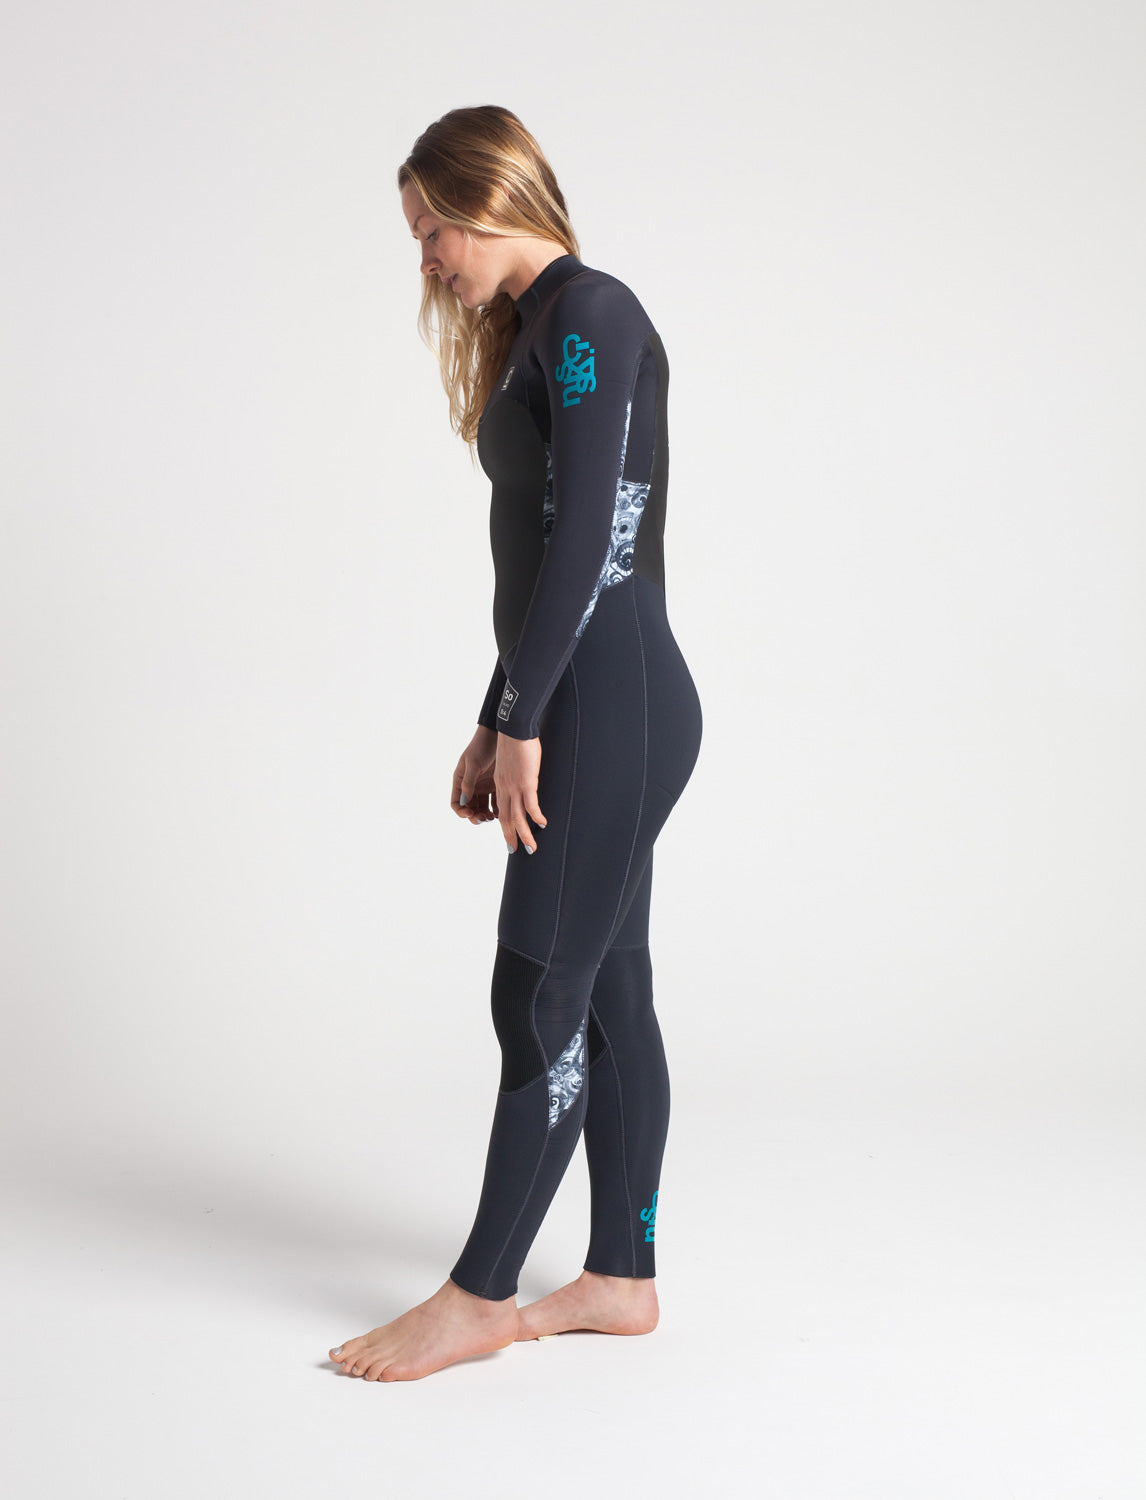 SOLACE 5:4 BACK ZIP